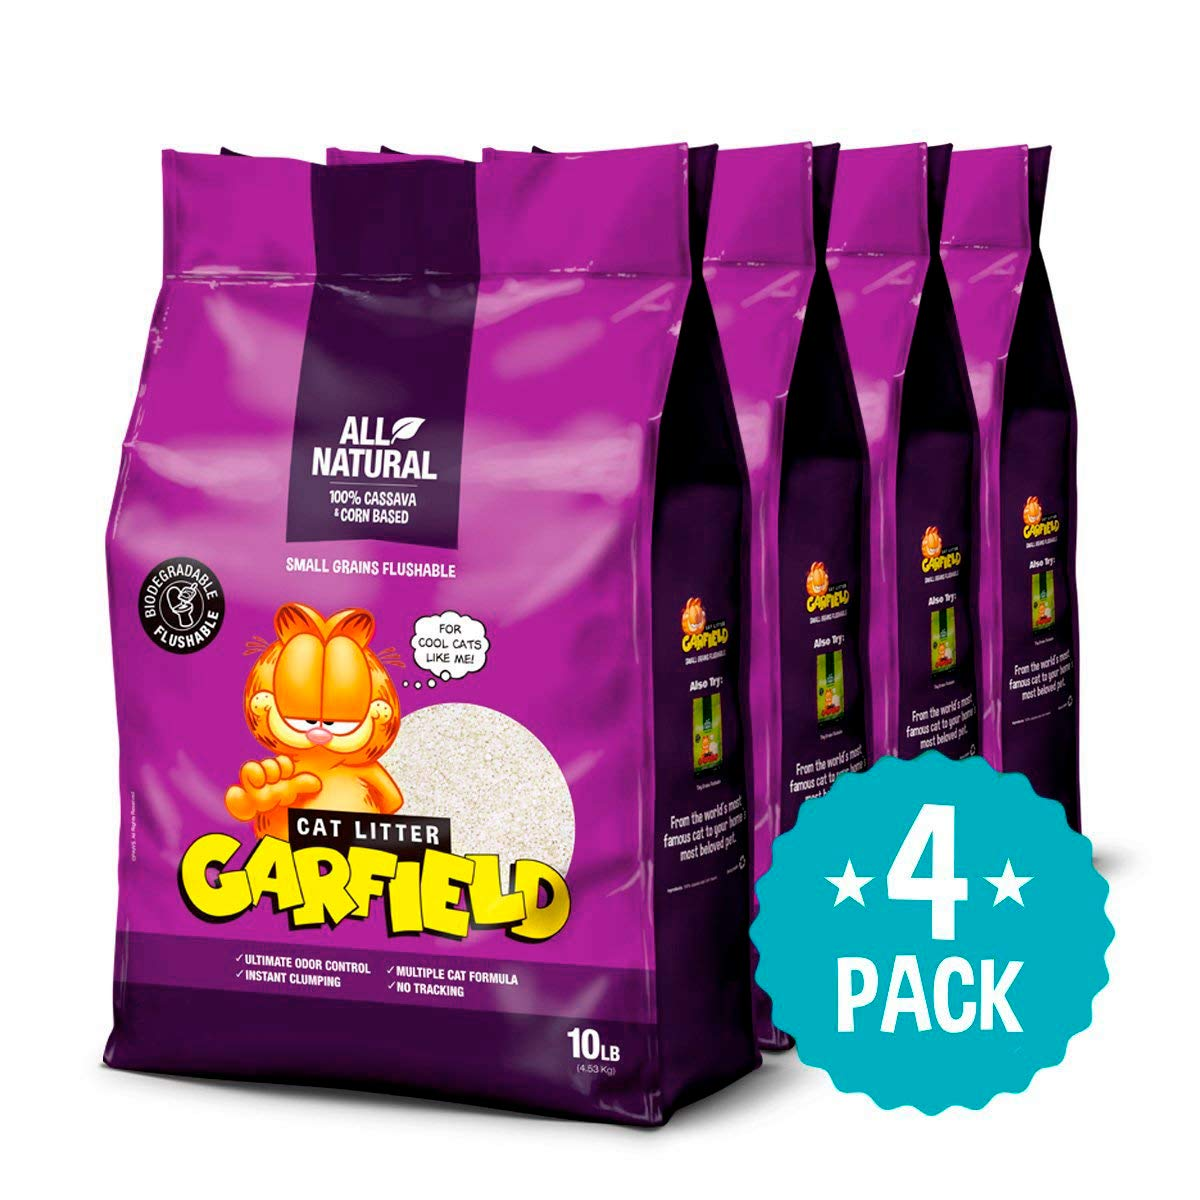 Garfield Cat Litter | All natural, fast clumping, purrfect for all cats | DUST FREE, CHEMICAL FREE, CLAY FREE | Biodegradable & Flushable. Small Grains 15 lb. Petfive Brands 50000